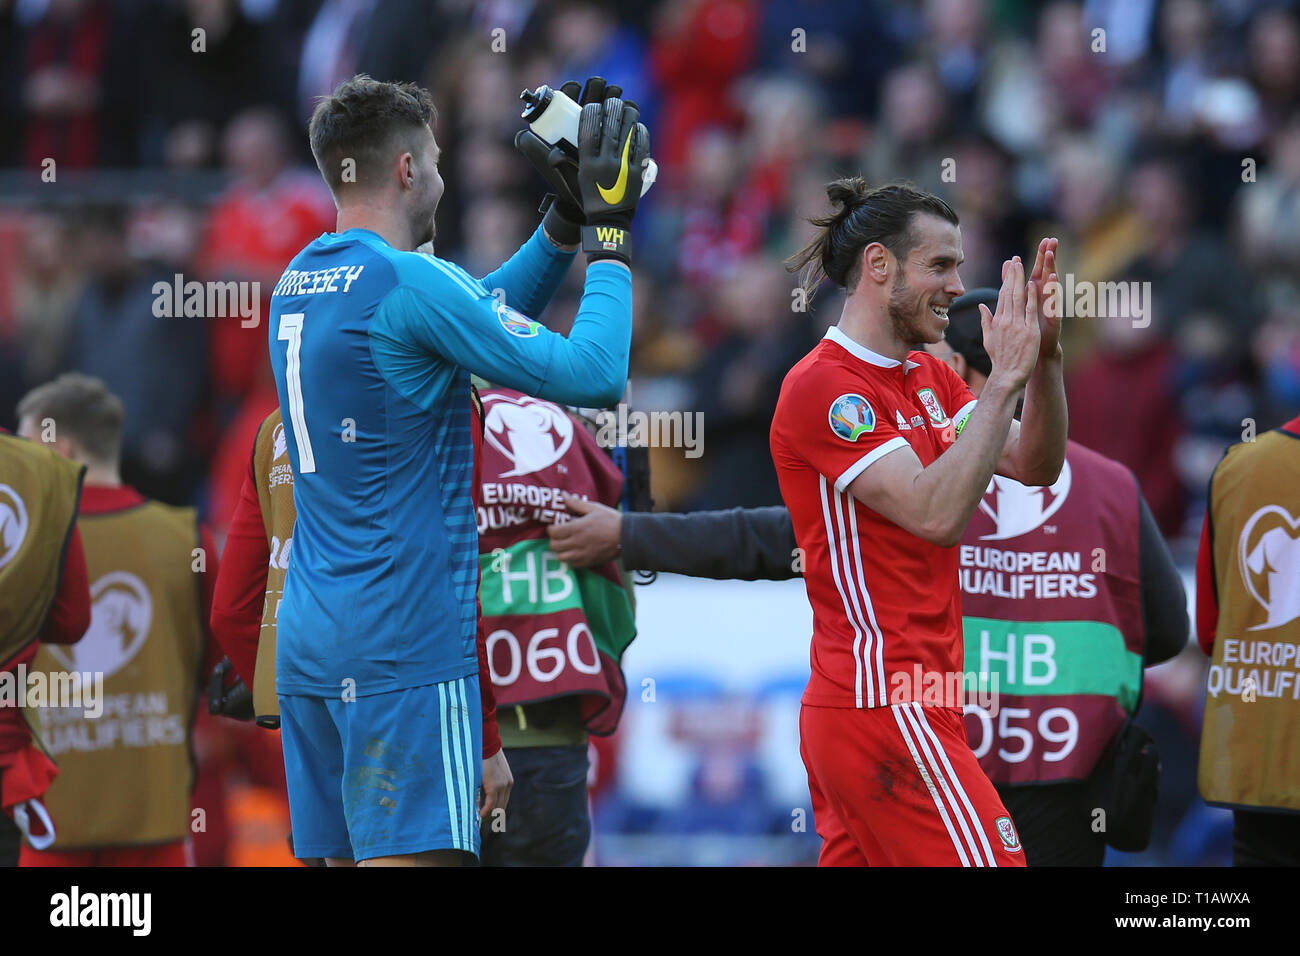 Cardiff, UK. 24th Mar, 2019. Gareth Bale of Wales (right) and Wayne Hennessey, the goalkeeper of Wales after the game. UEFA Euro 2020 qualifier match, group E, Wales v Slovakia at the Cardiff city Stadium in Cardiff, South Wales on Sunday 24th March 2019. pic by Andrew Orchard /Andrew Orchard sports photography/Alamy live News EDITORIAL USE ONLY Credit: Andrew Orchard sports photography/Alamy Live News Stock Photo